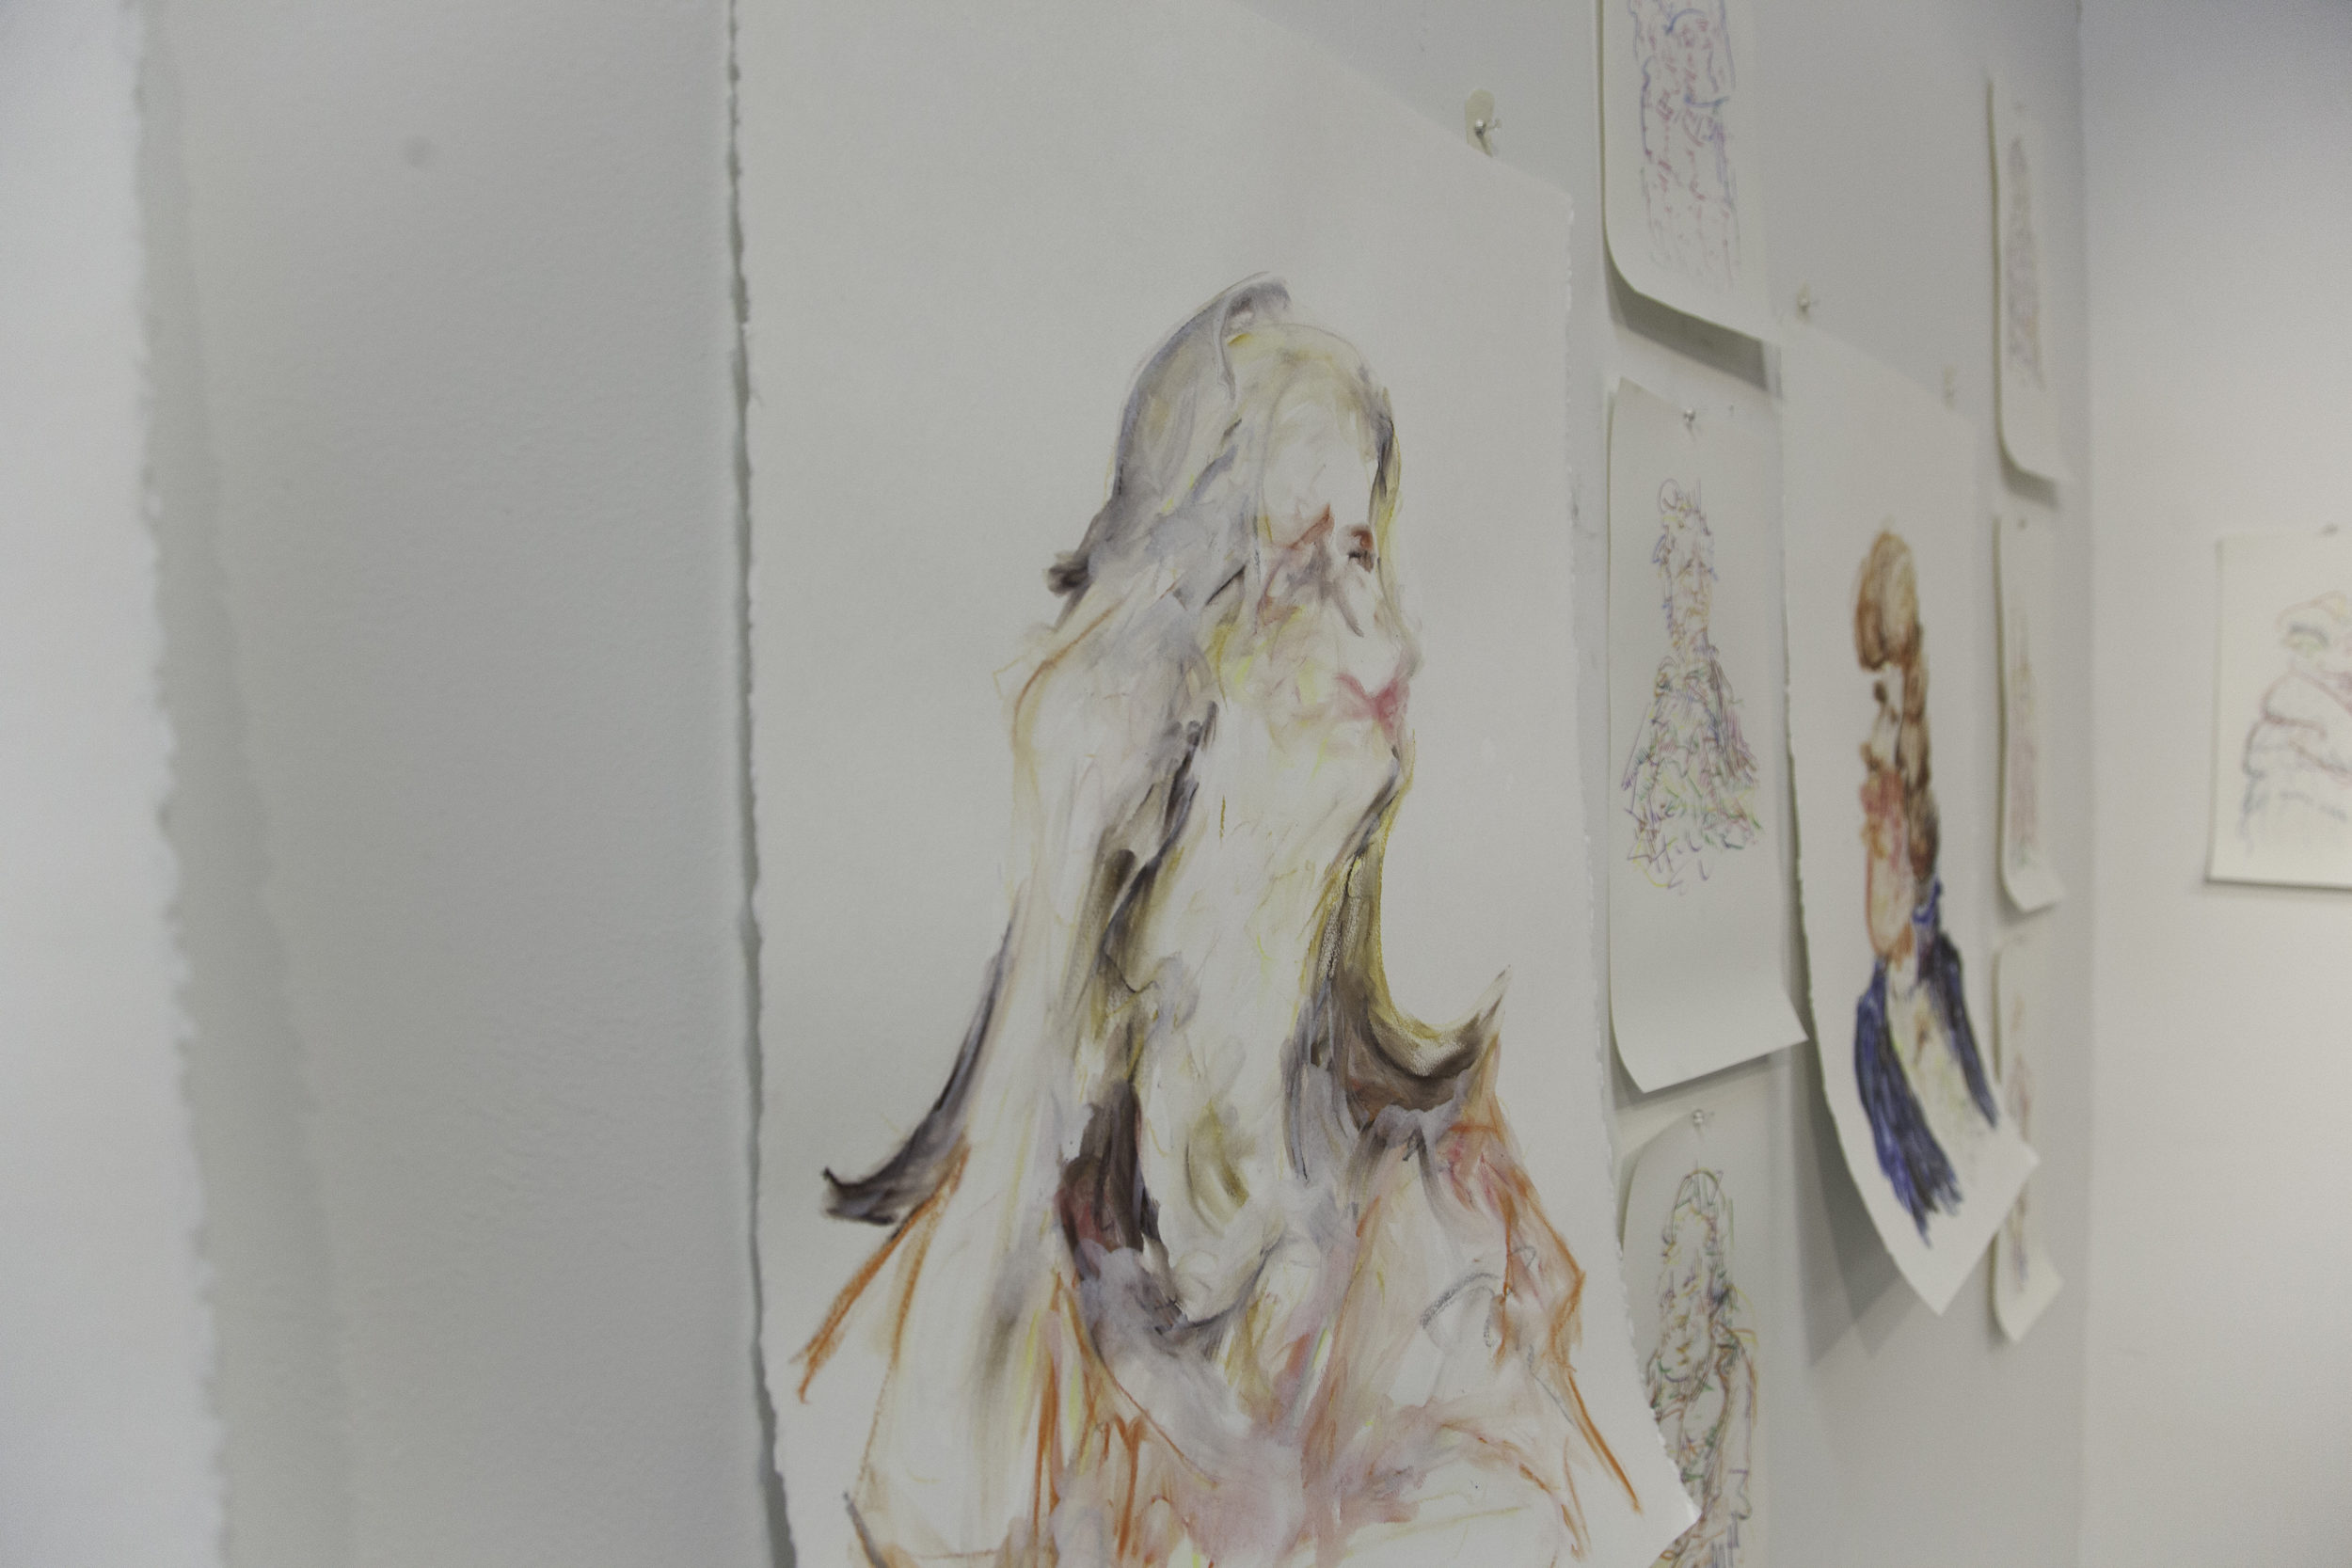 WorksOnPaper(Installation-View)__MG_3993-as-Smart-Object-1.jpg